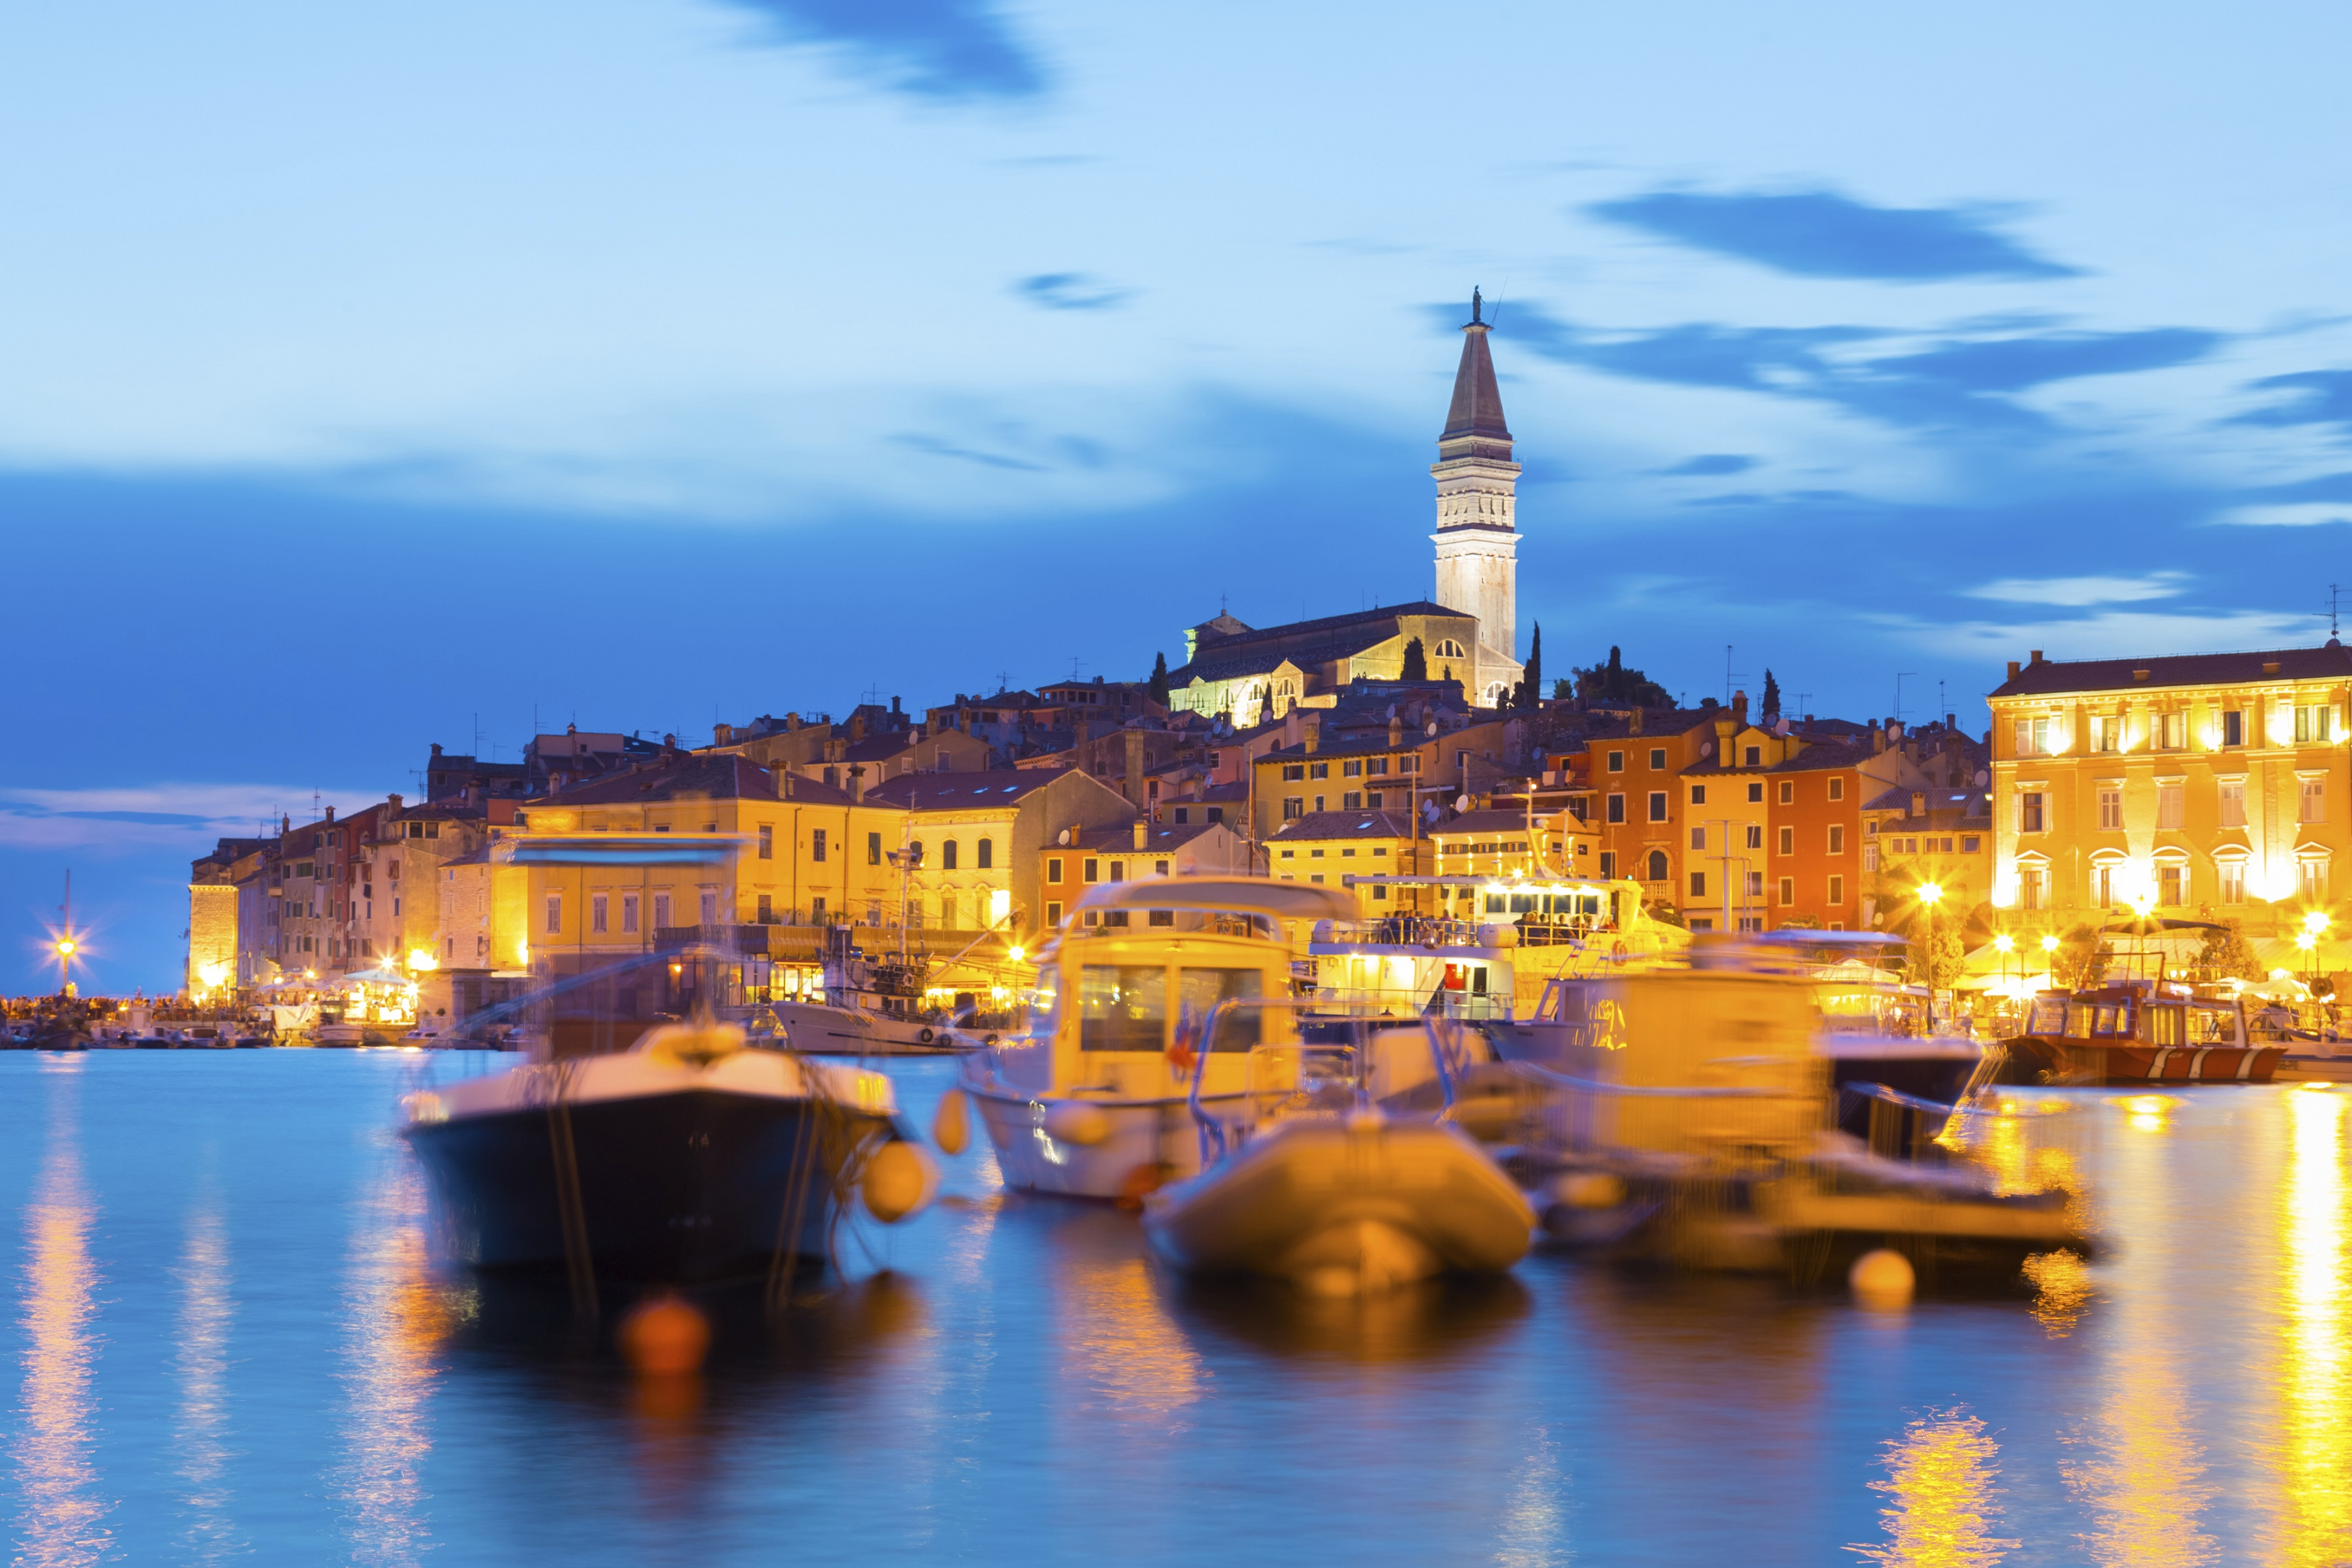 High Resolution Wallpaper | Rovinj 3240x2160 px